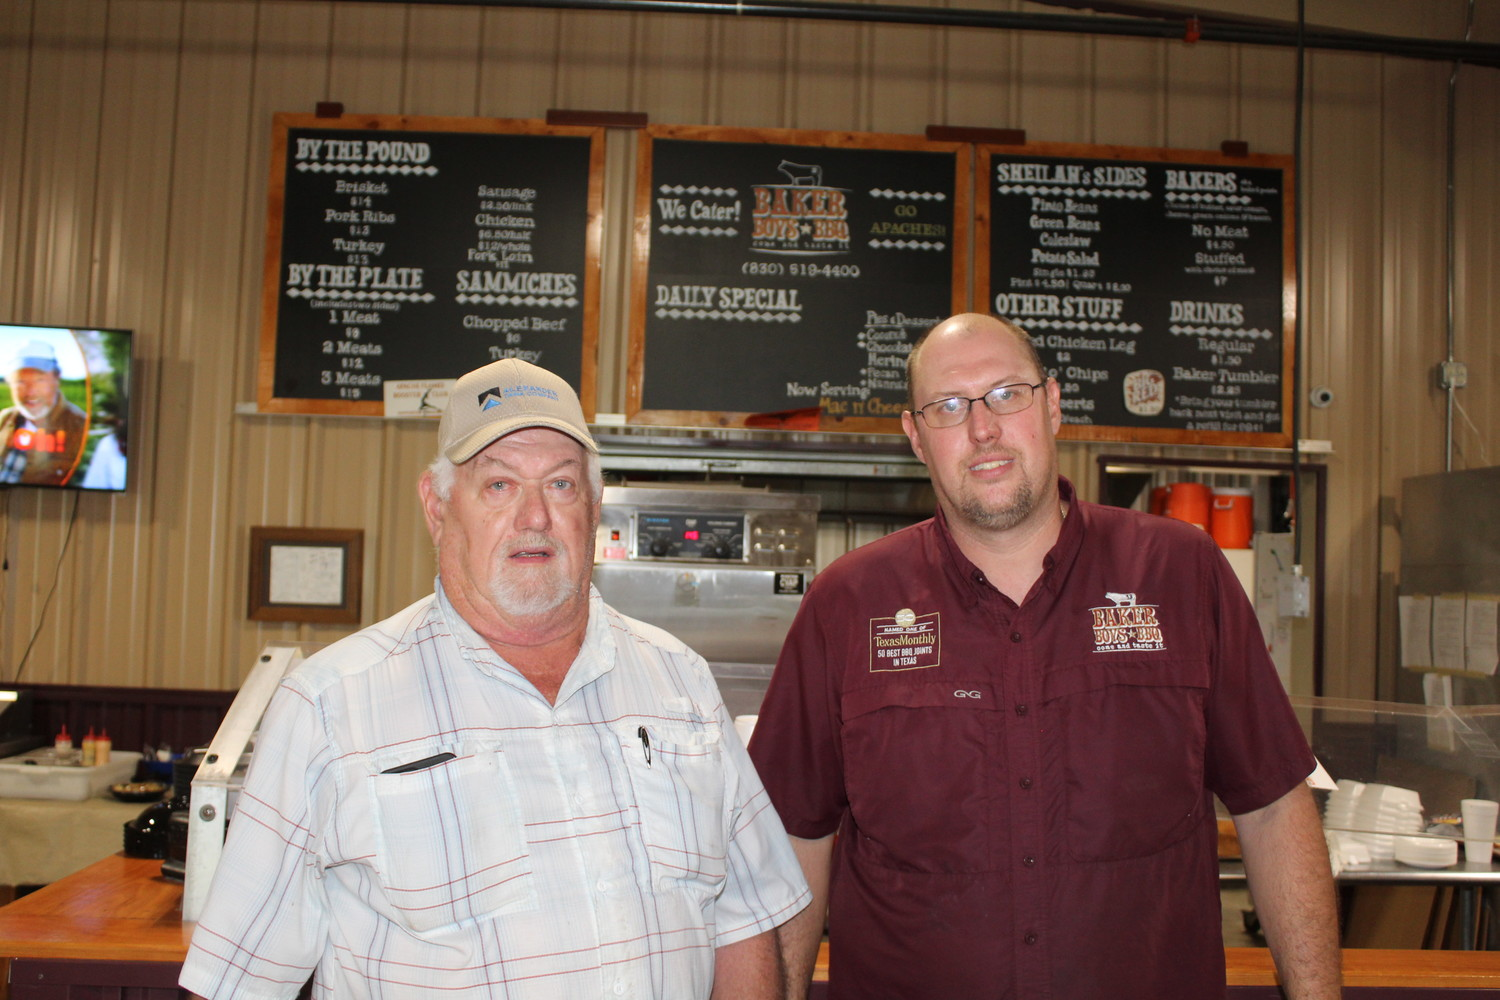 Baker Boys owners Phil (left) and Wayne Baker.